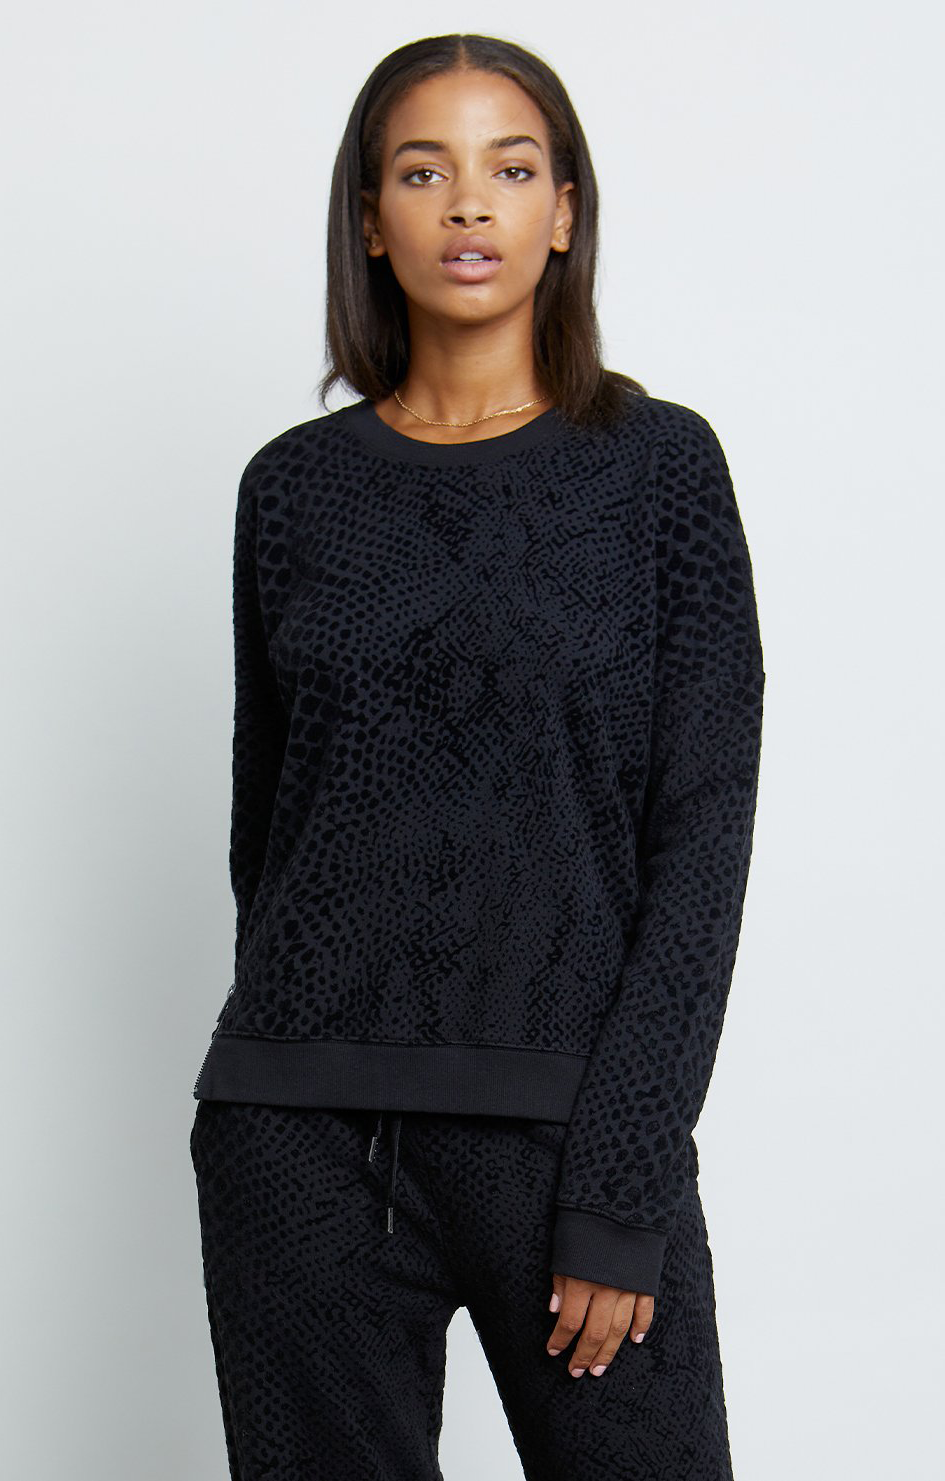 Marlo Sweatshirt - Black Flocked Cobra